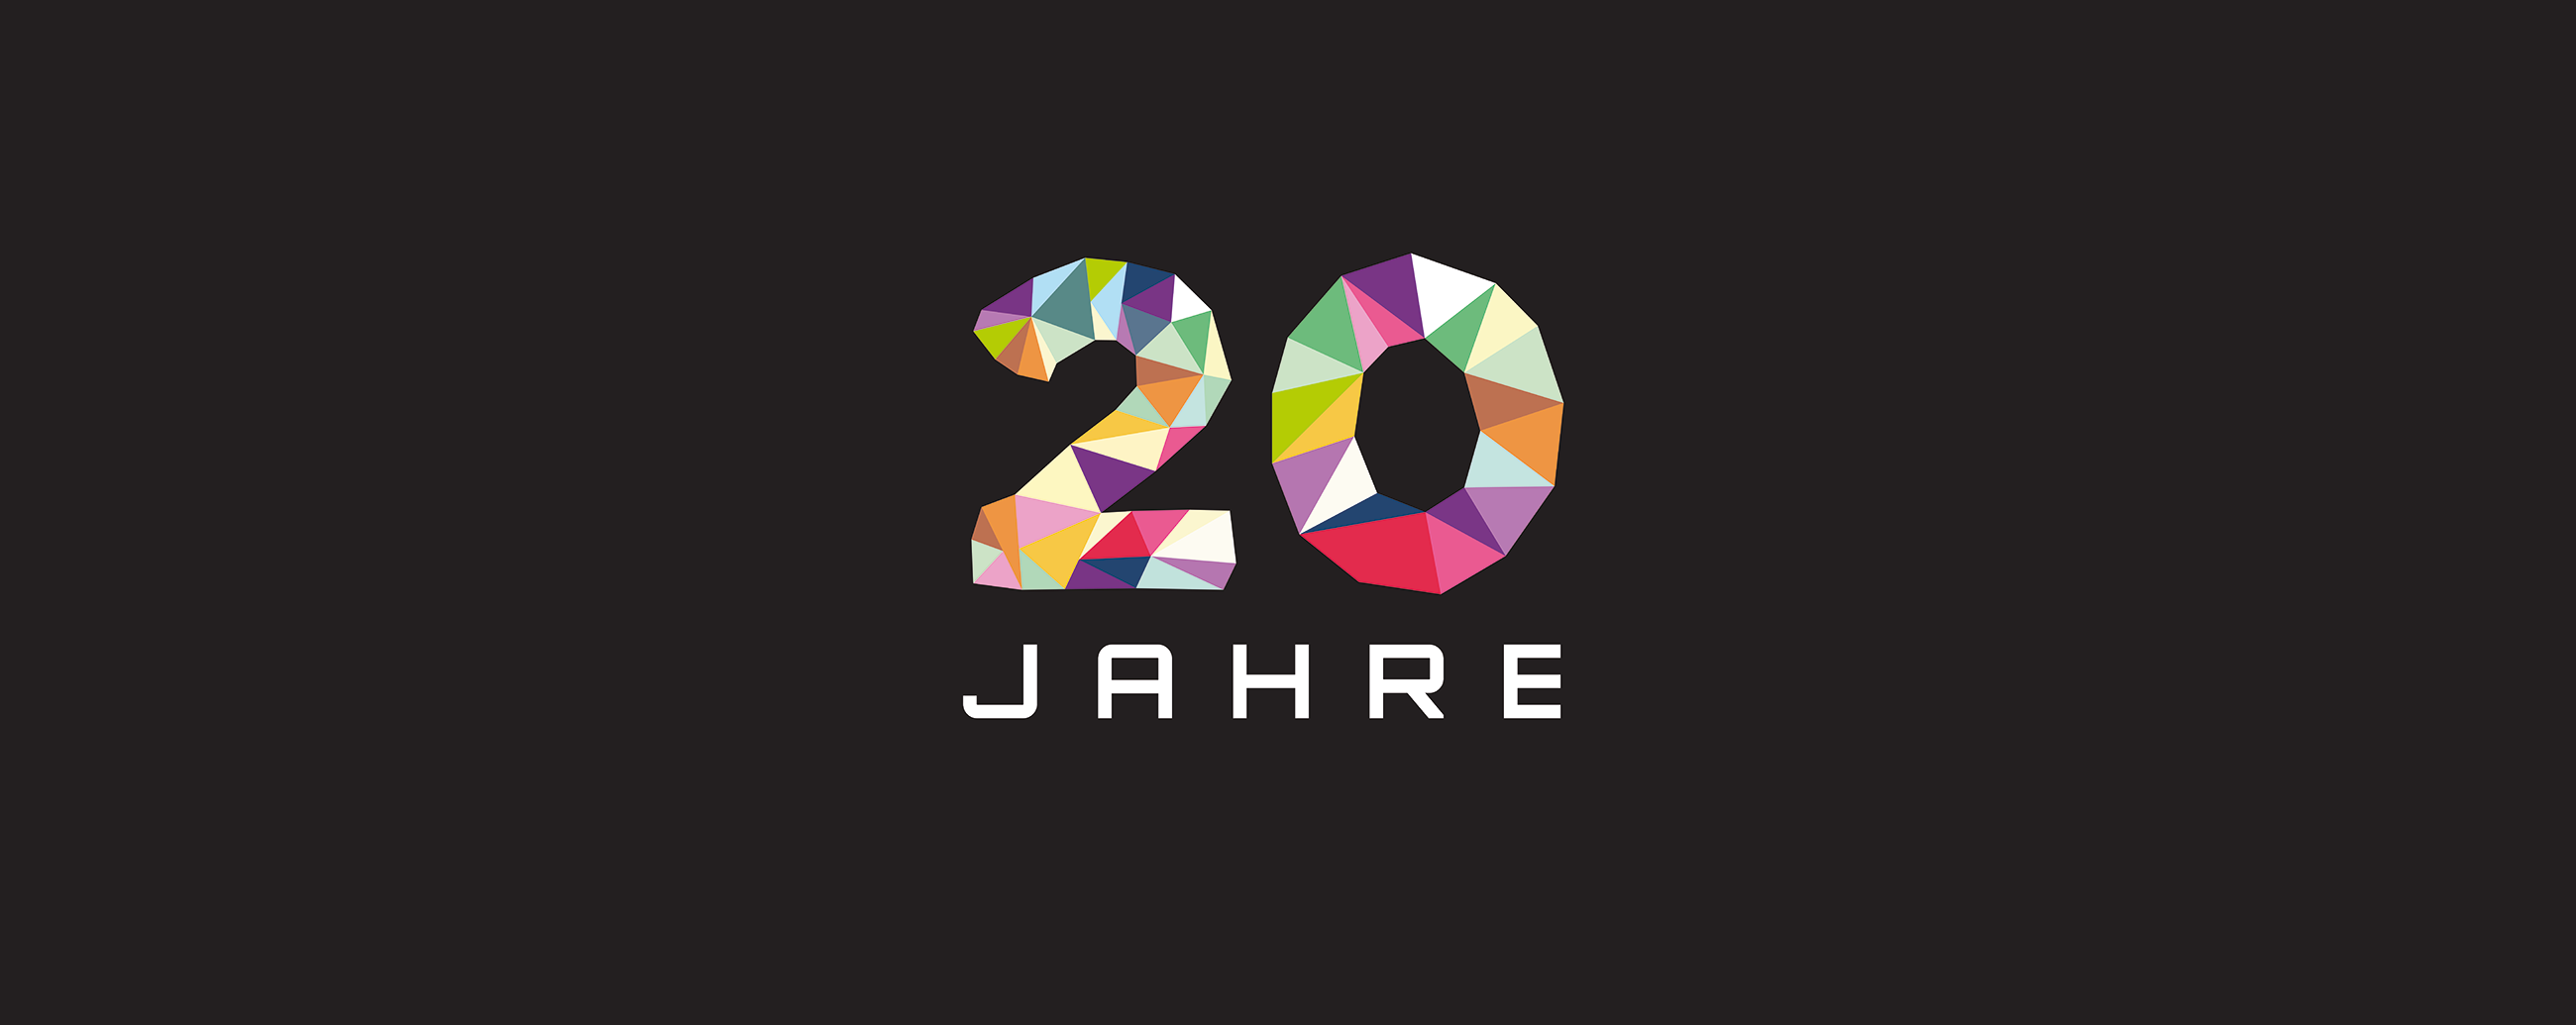 20 Jahre Substring